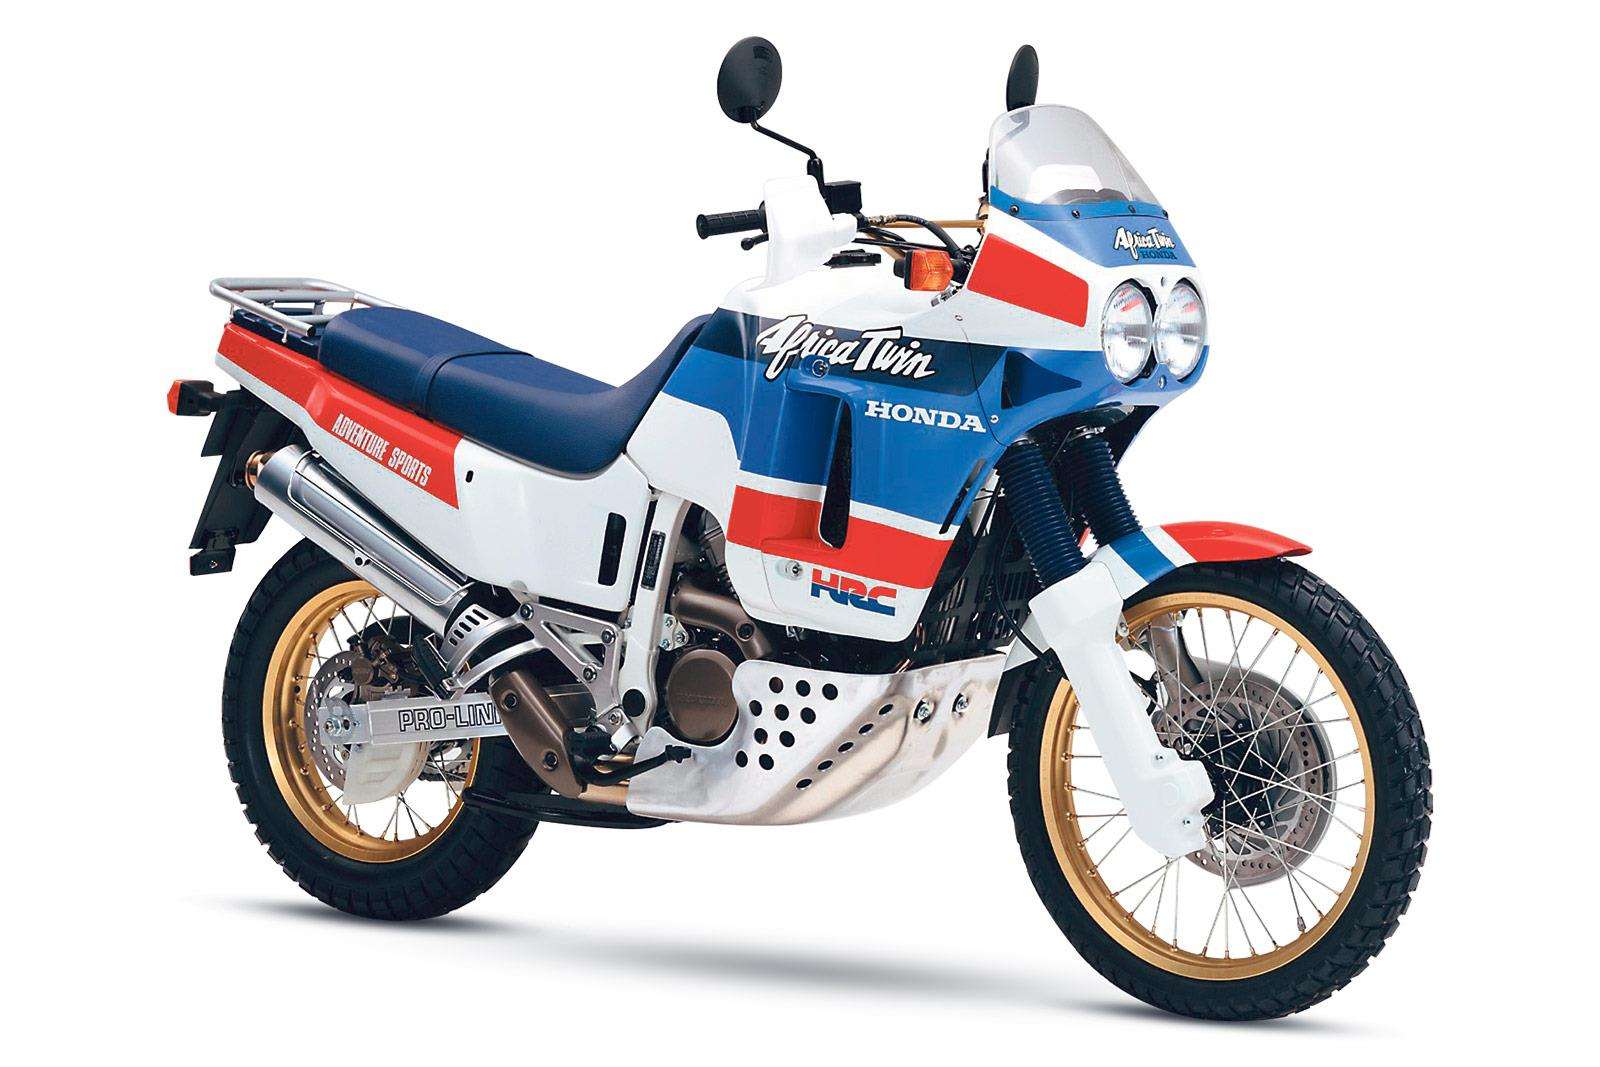 Honda Parts Cheap >> 7 bikes with Africa twin cred on the cheap | MCN